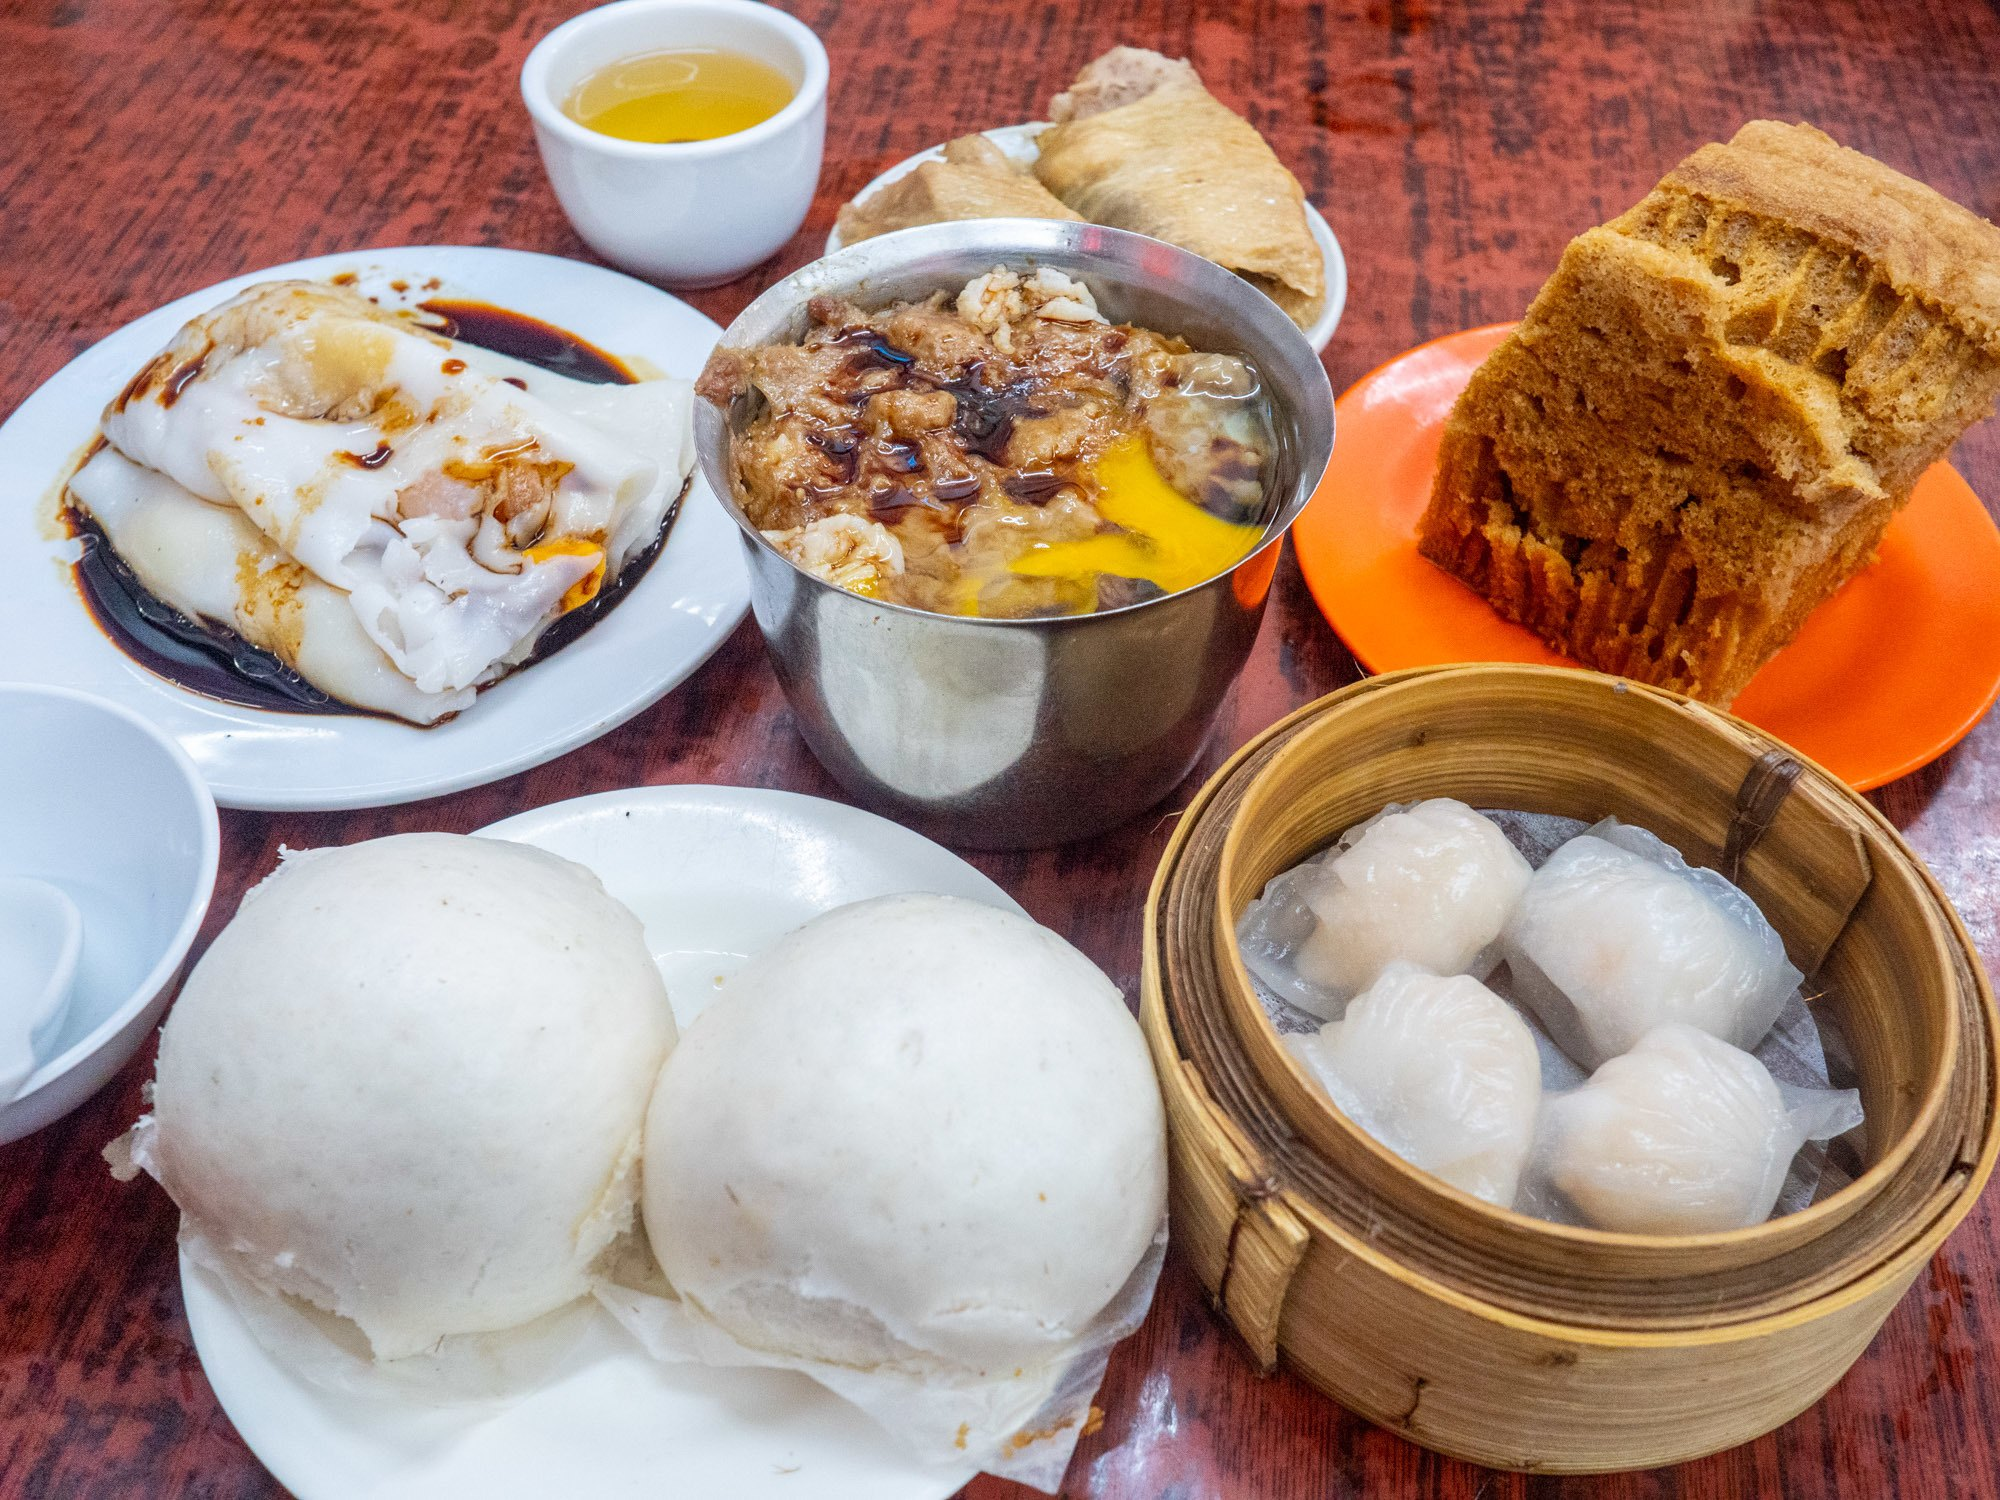 Pork buns, shrimp dumplings, and the cheong fun rice noodle rolls are all pictured here